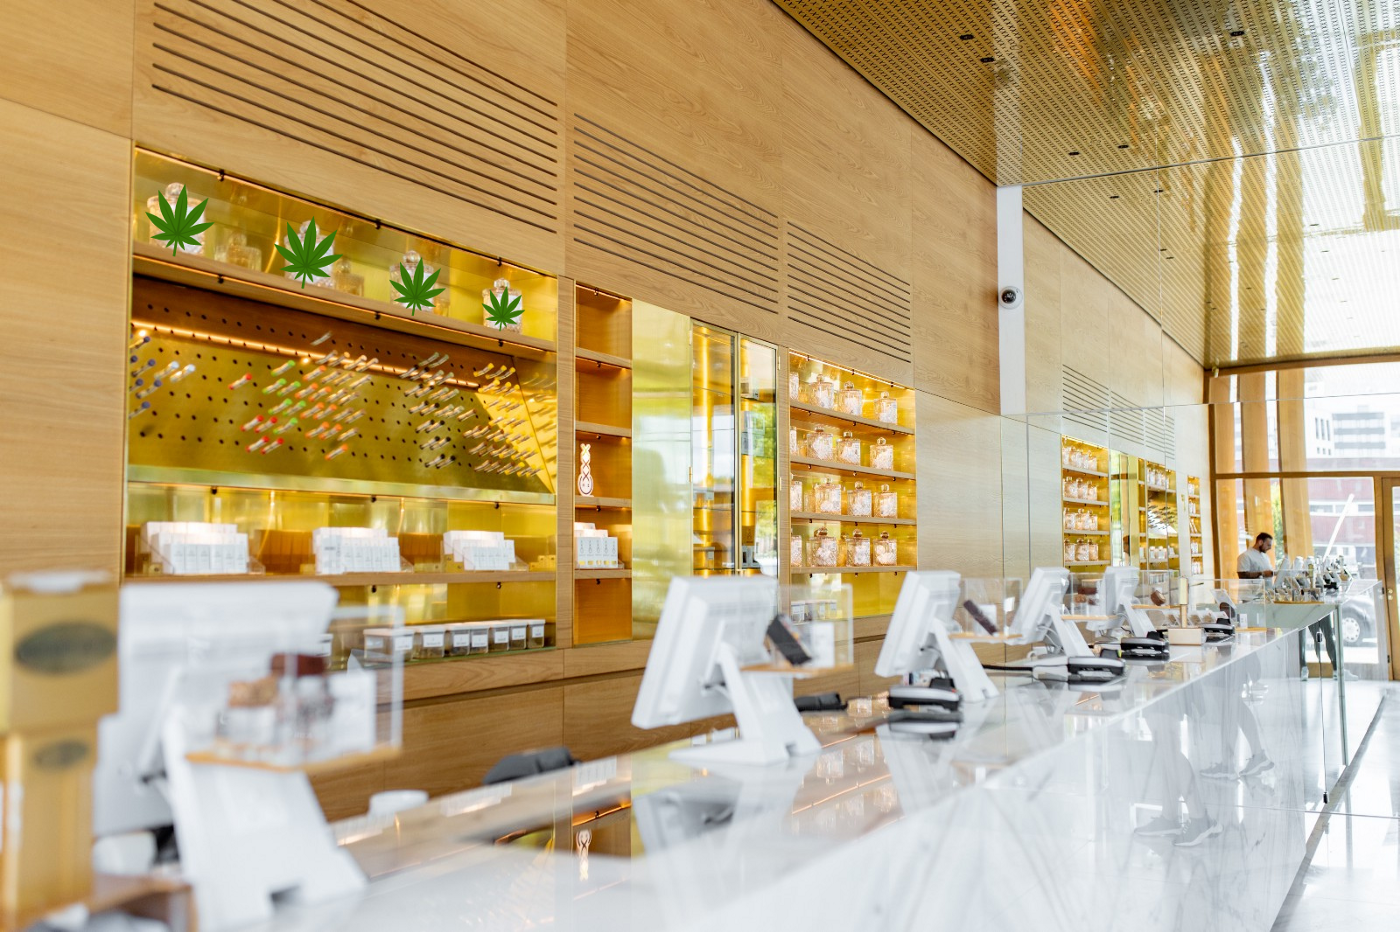 Photo of a chic cannabis dispensary